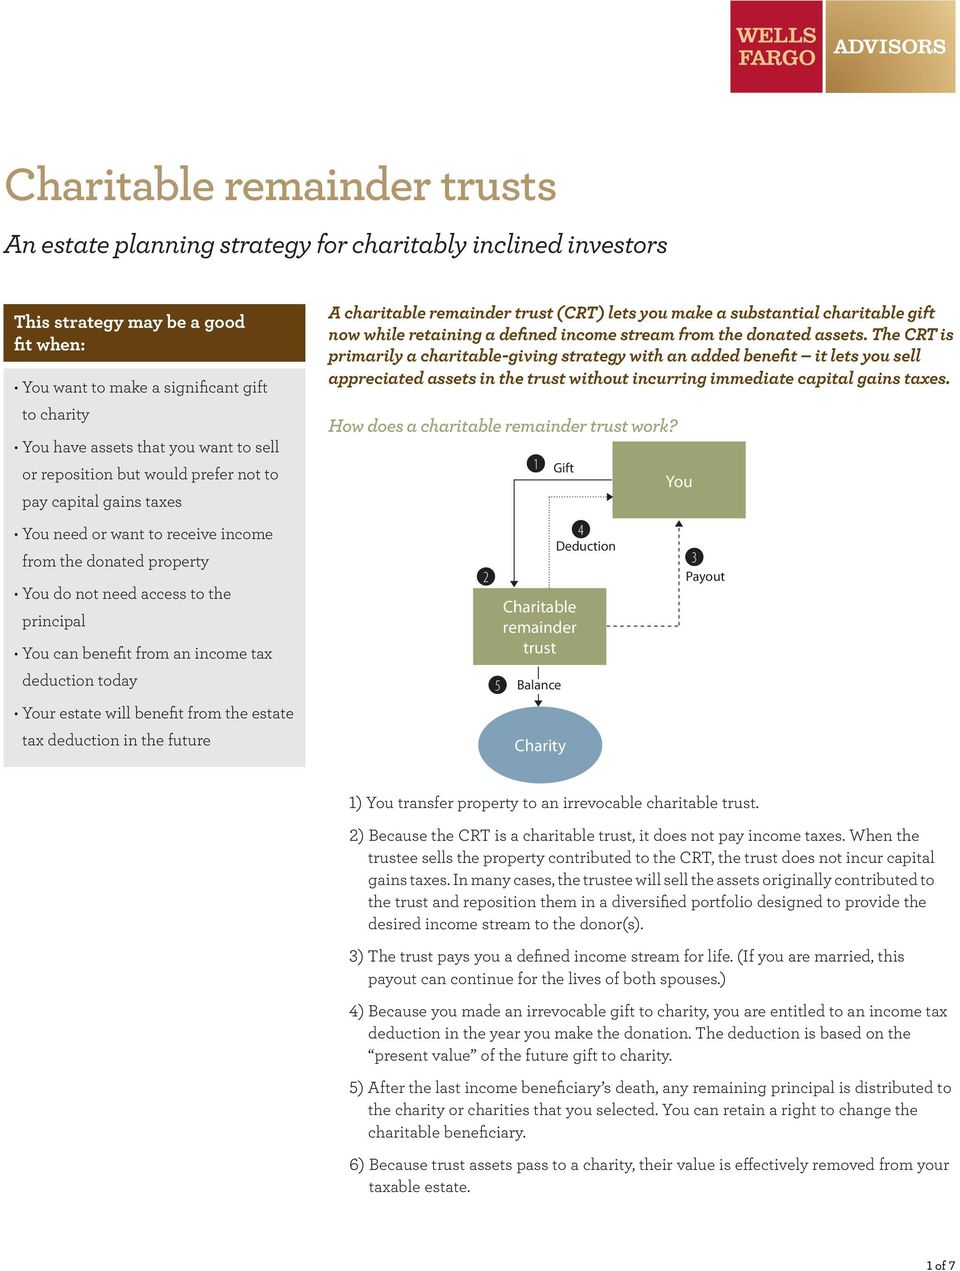 income tax deduction today Your estate will benefit from the estate tax deduction in the future A charitable remainder trust (CRT) lets you make a substantial charitable gift now while retaining a